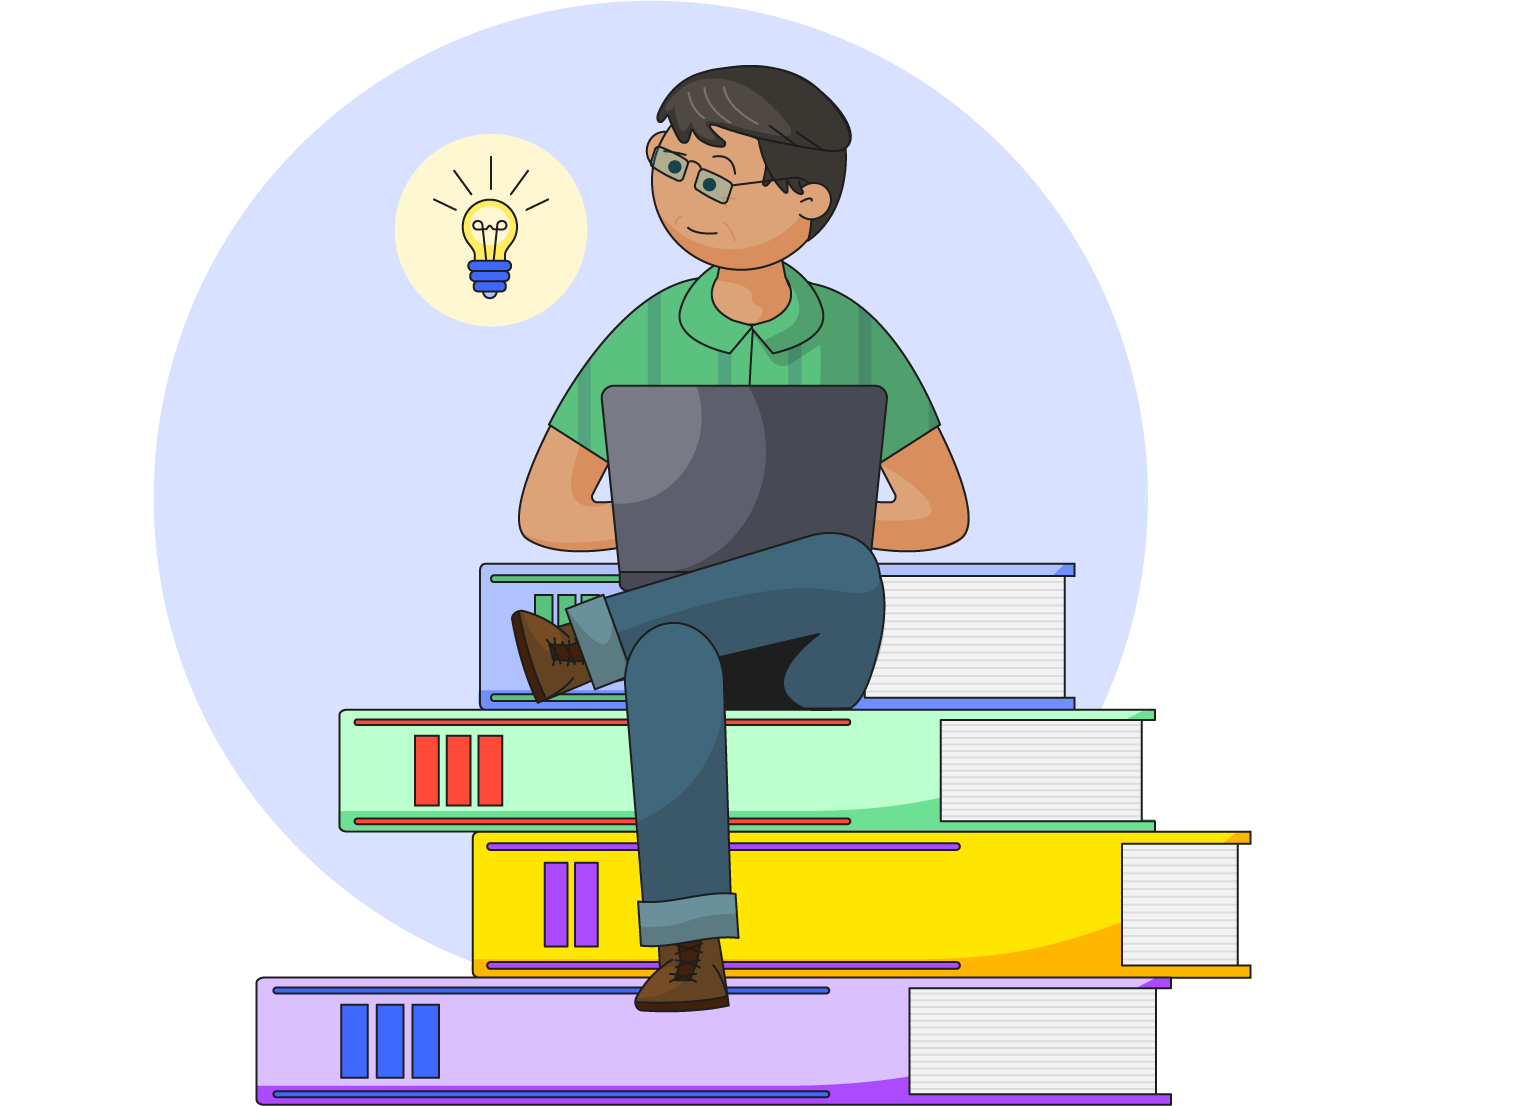 Illustration of a man with a laptop sitting on a pile of oversized books